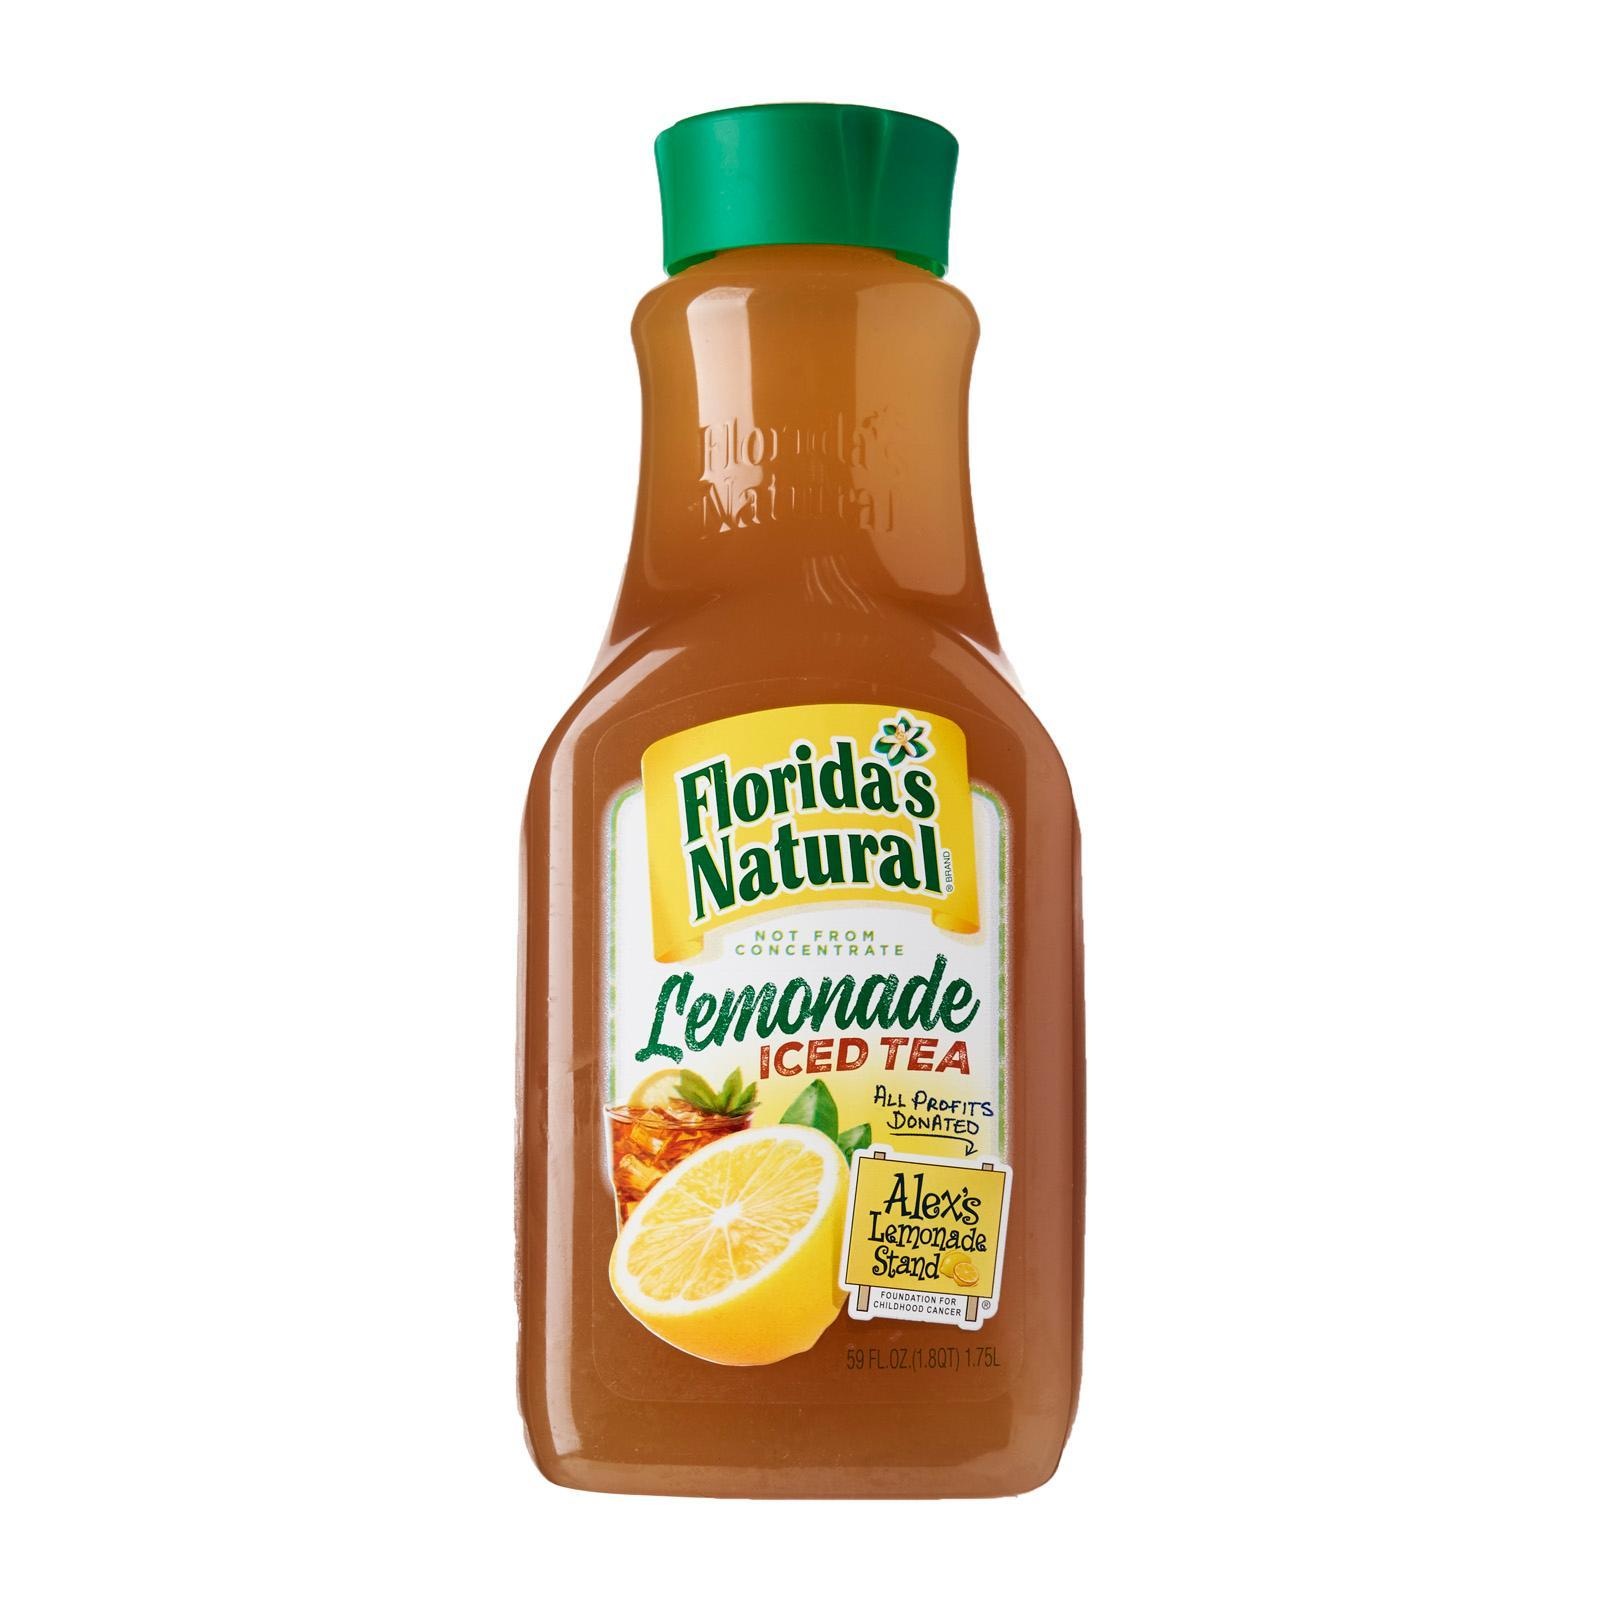 Florida's Natural Lemonade Ice Tea